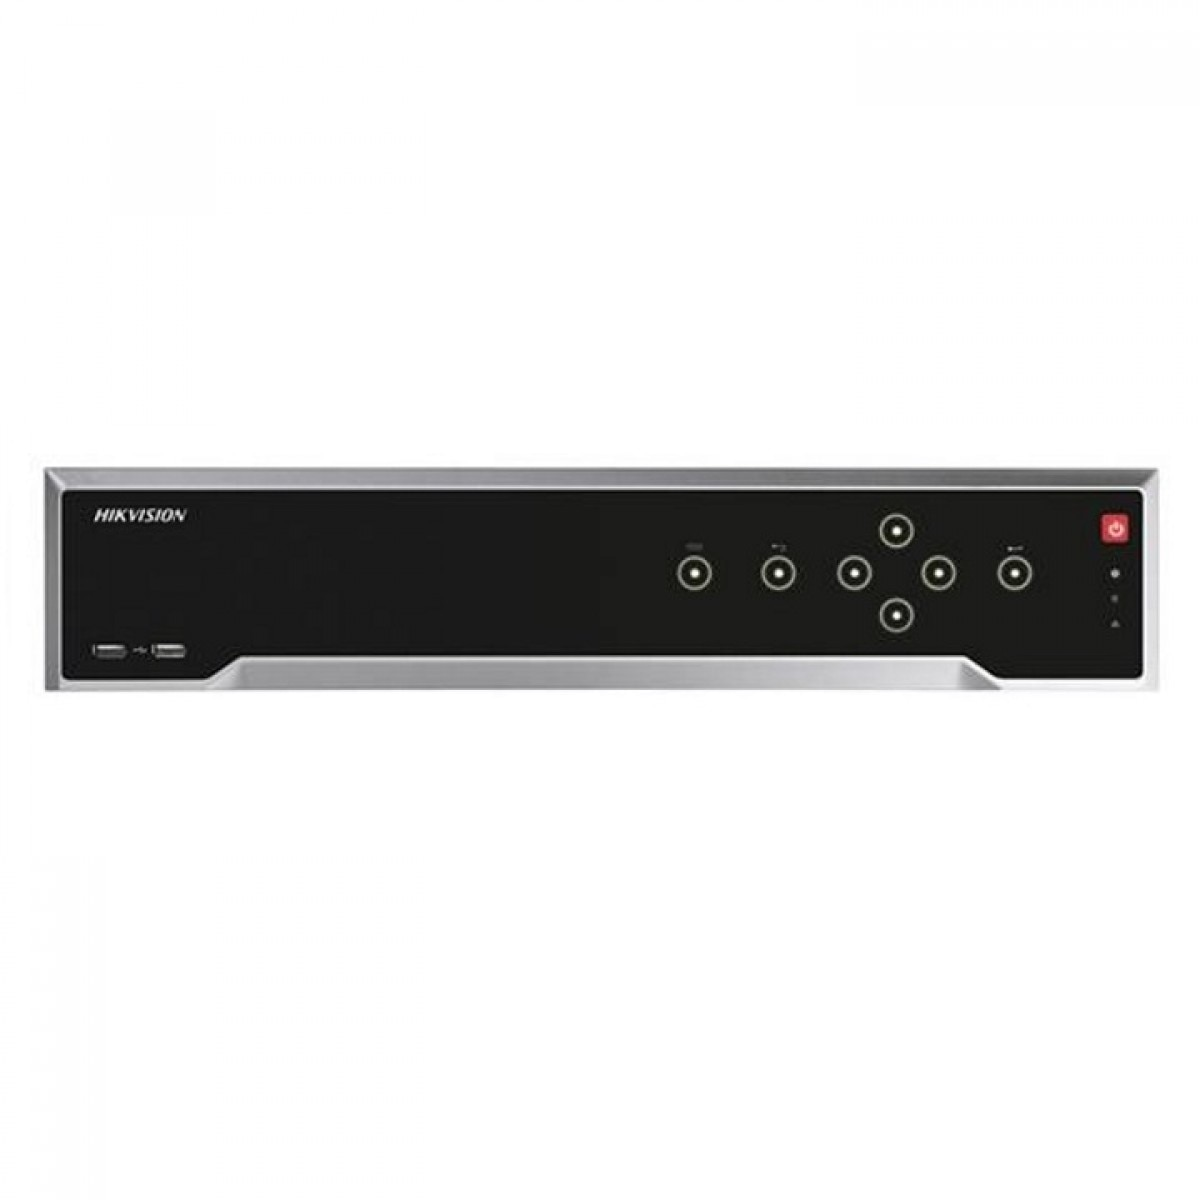 Fotografie NVR HIKVISION DS-7716NI-I4/16P, 256Mbps 32-ch IP video, 4 SATA interfaces, VCA detection/search, 1.5U case, 19""